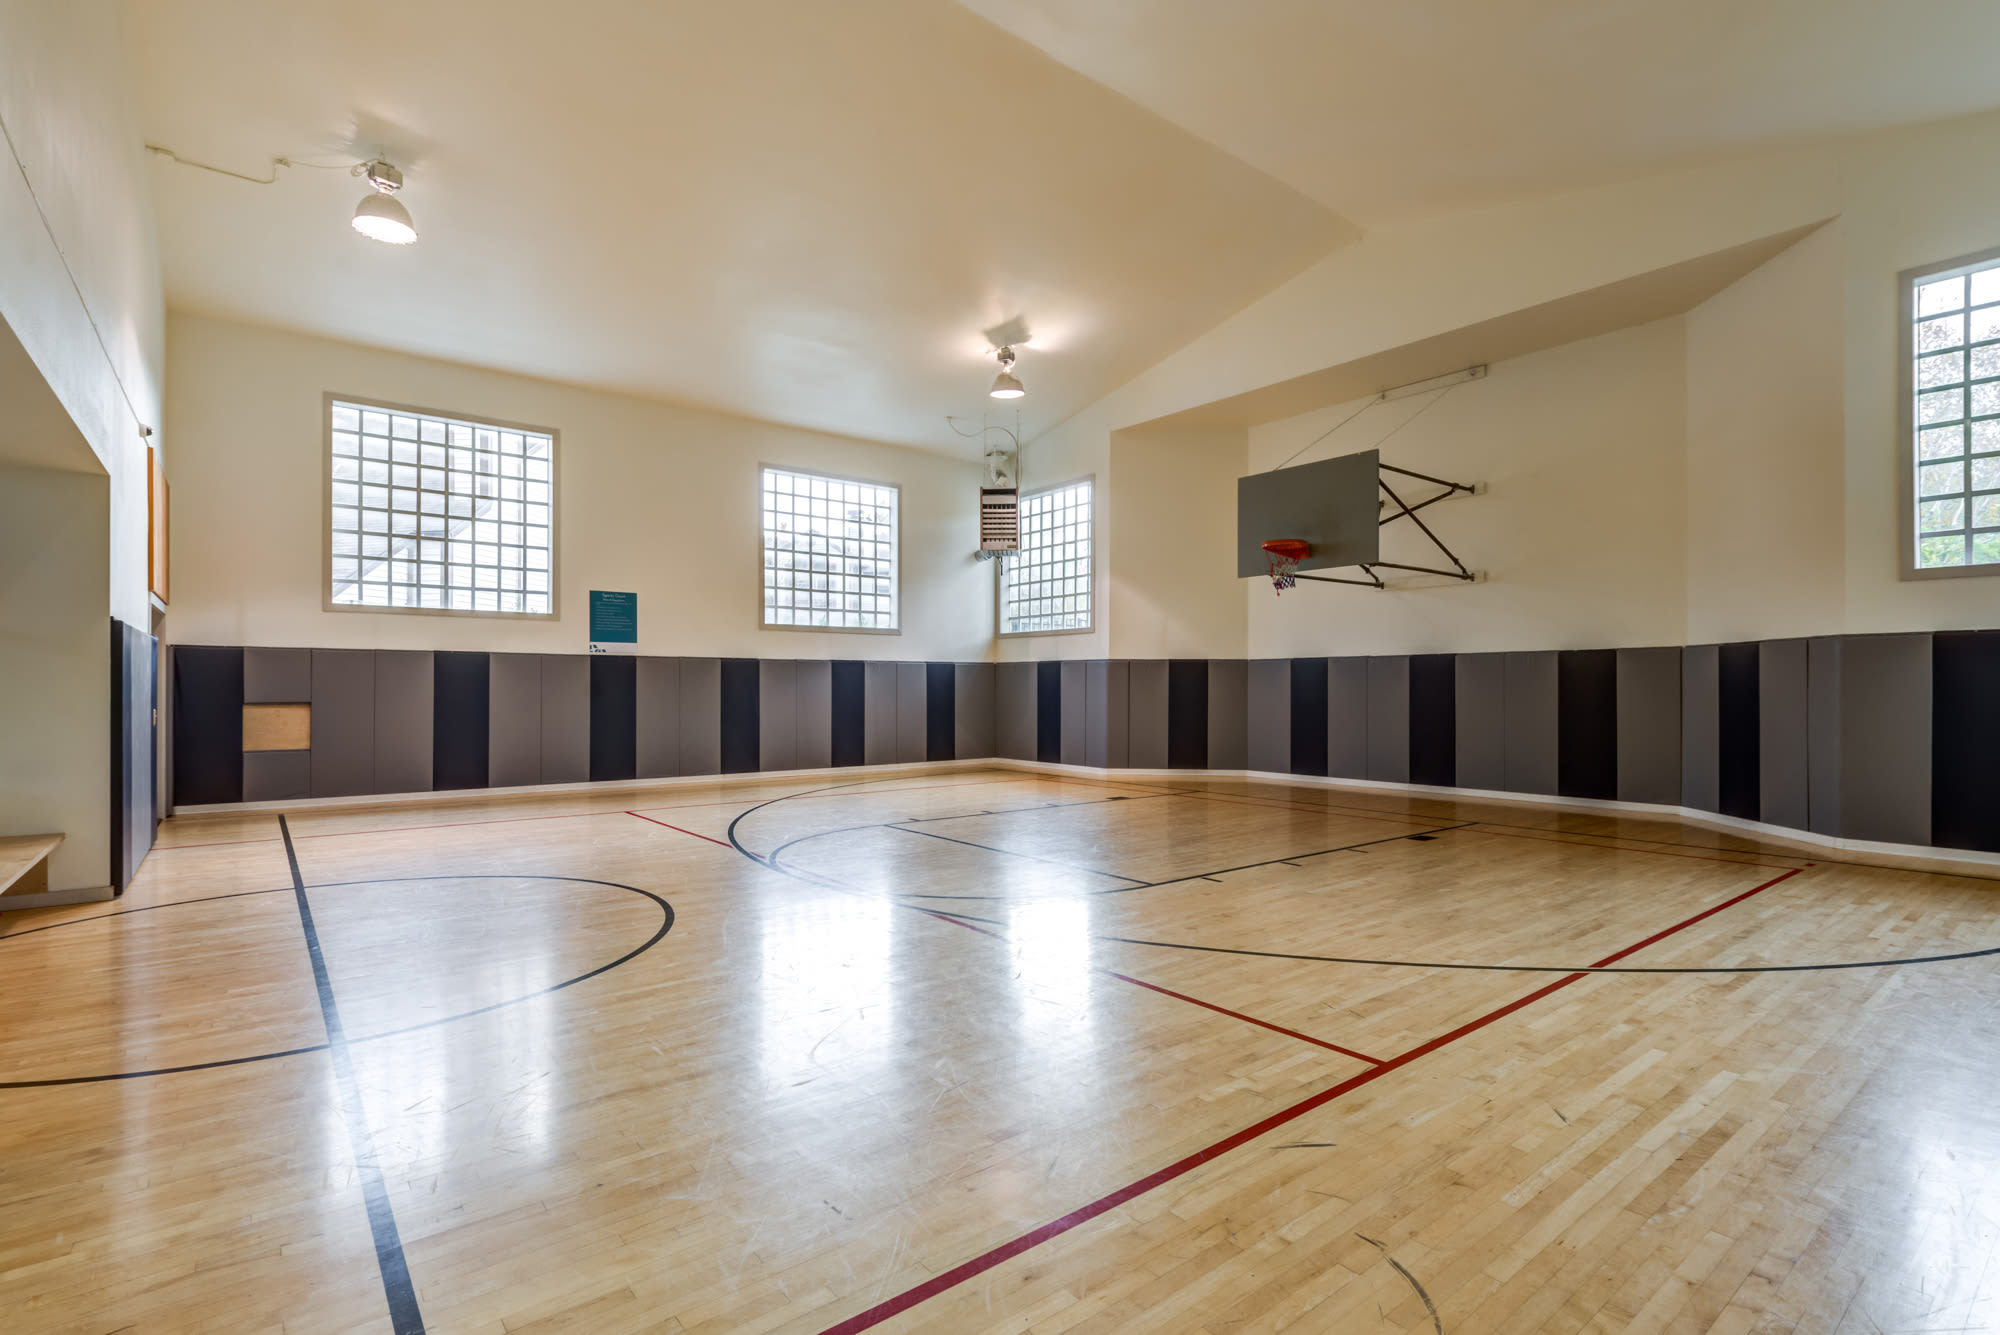 Basketball Court at Olin Fields Apartments in Everett